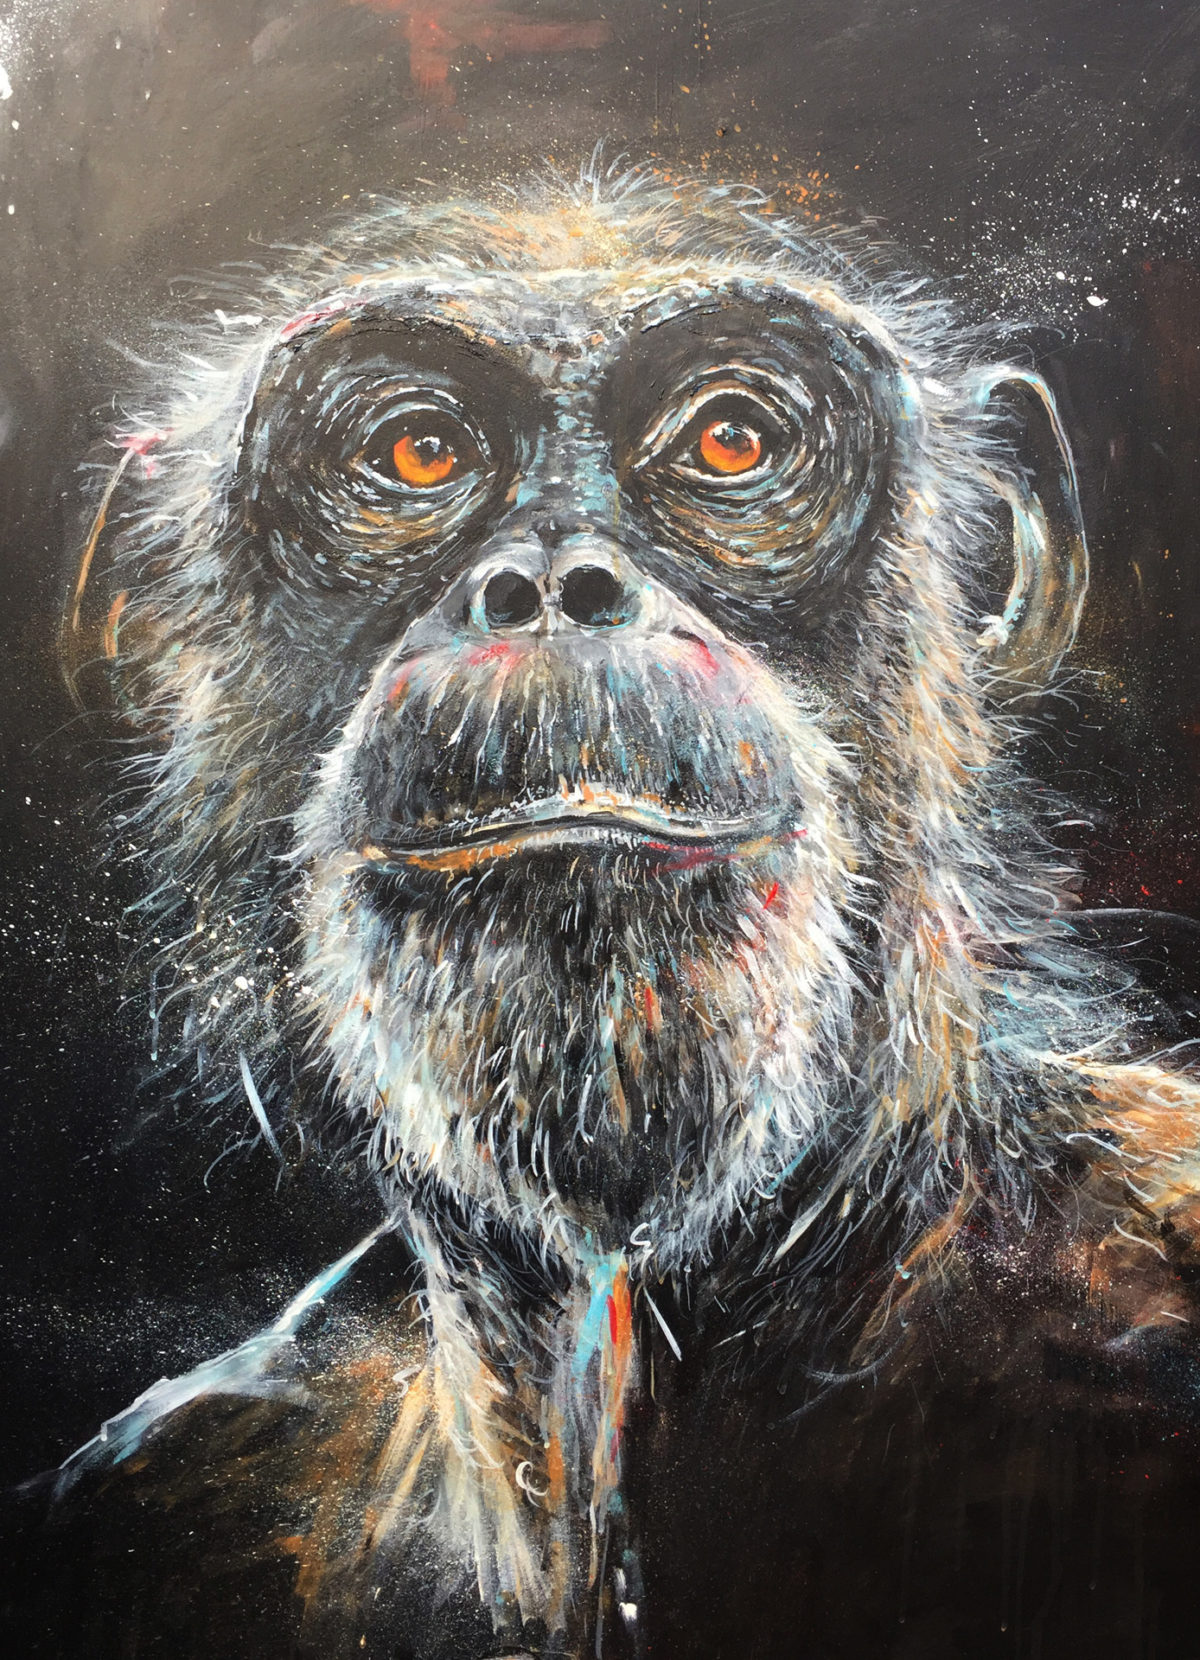 Chimpanzee Gaze by Artist Ewen Macaulay